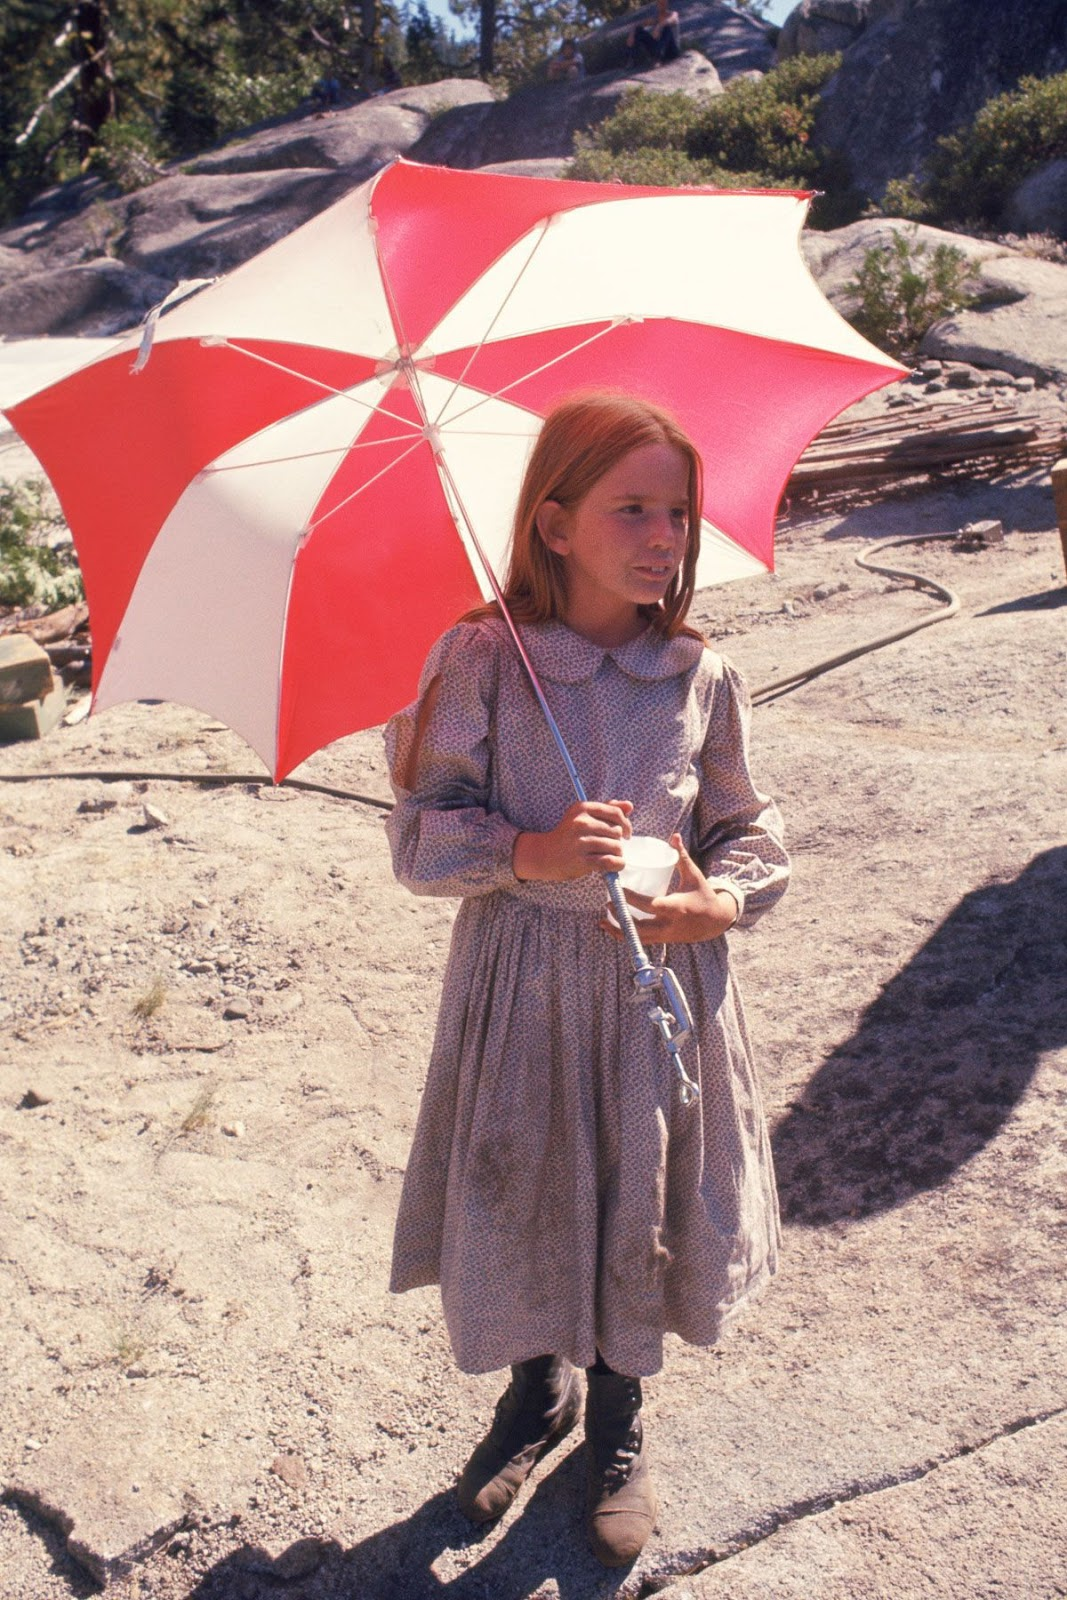 Golf La Prairie >> 19 Amazing Behind the Scenes Photos From the Making of TV Classic 'Little House on the Prairie ...